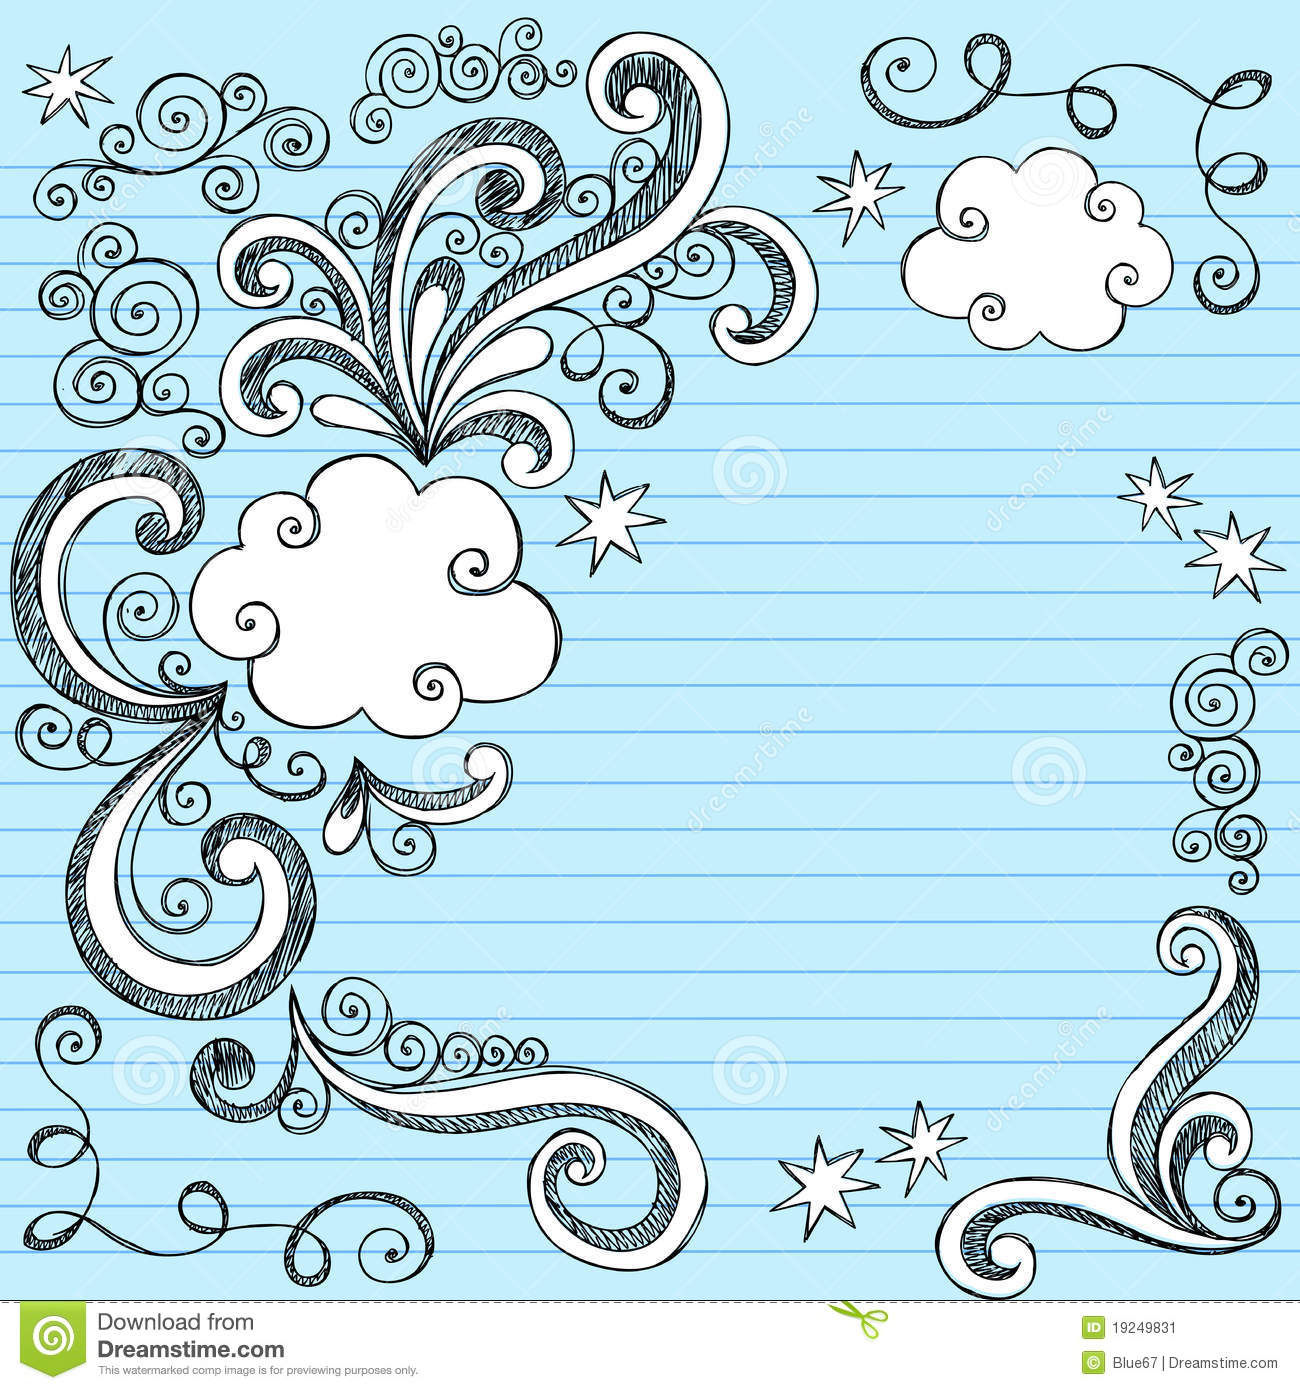 Background Designs For Projects Bubble Design Elements on